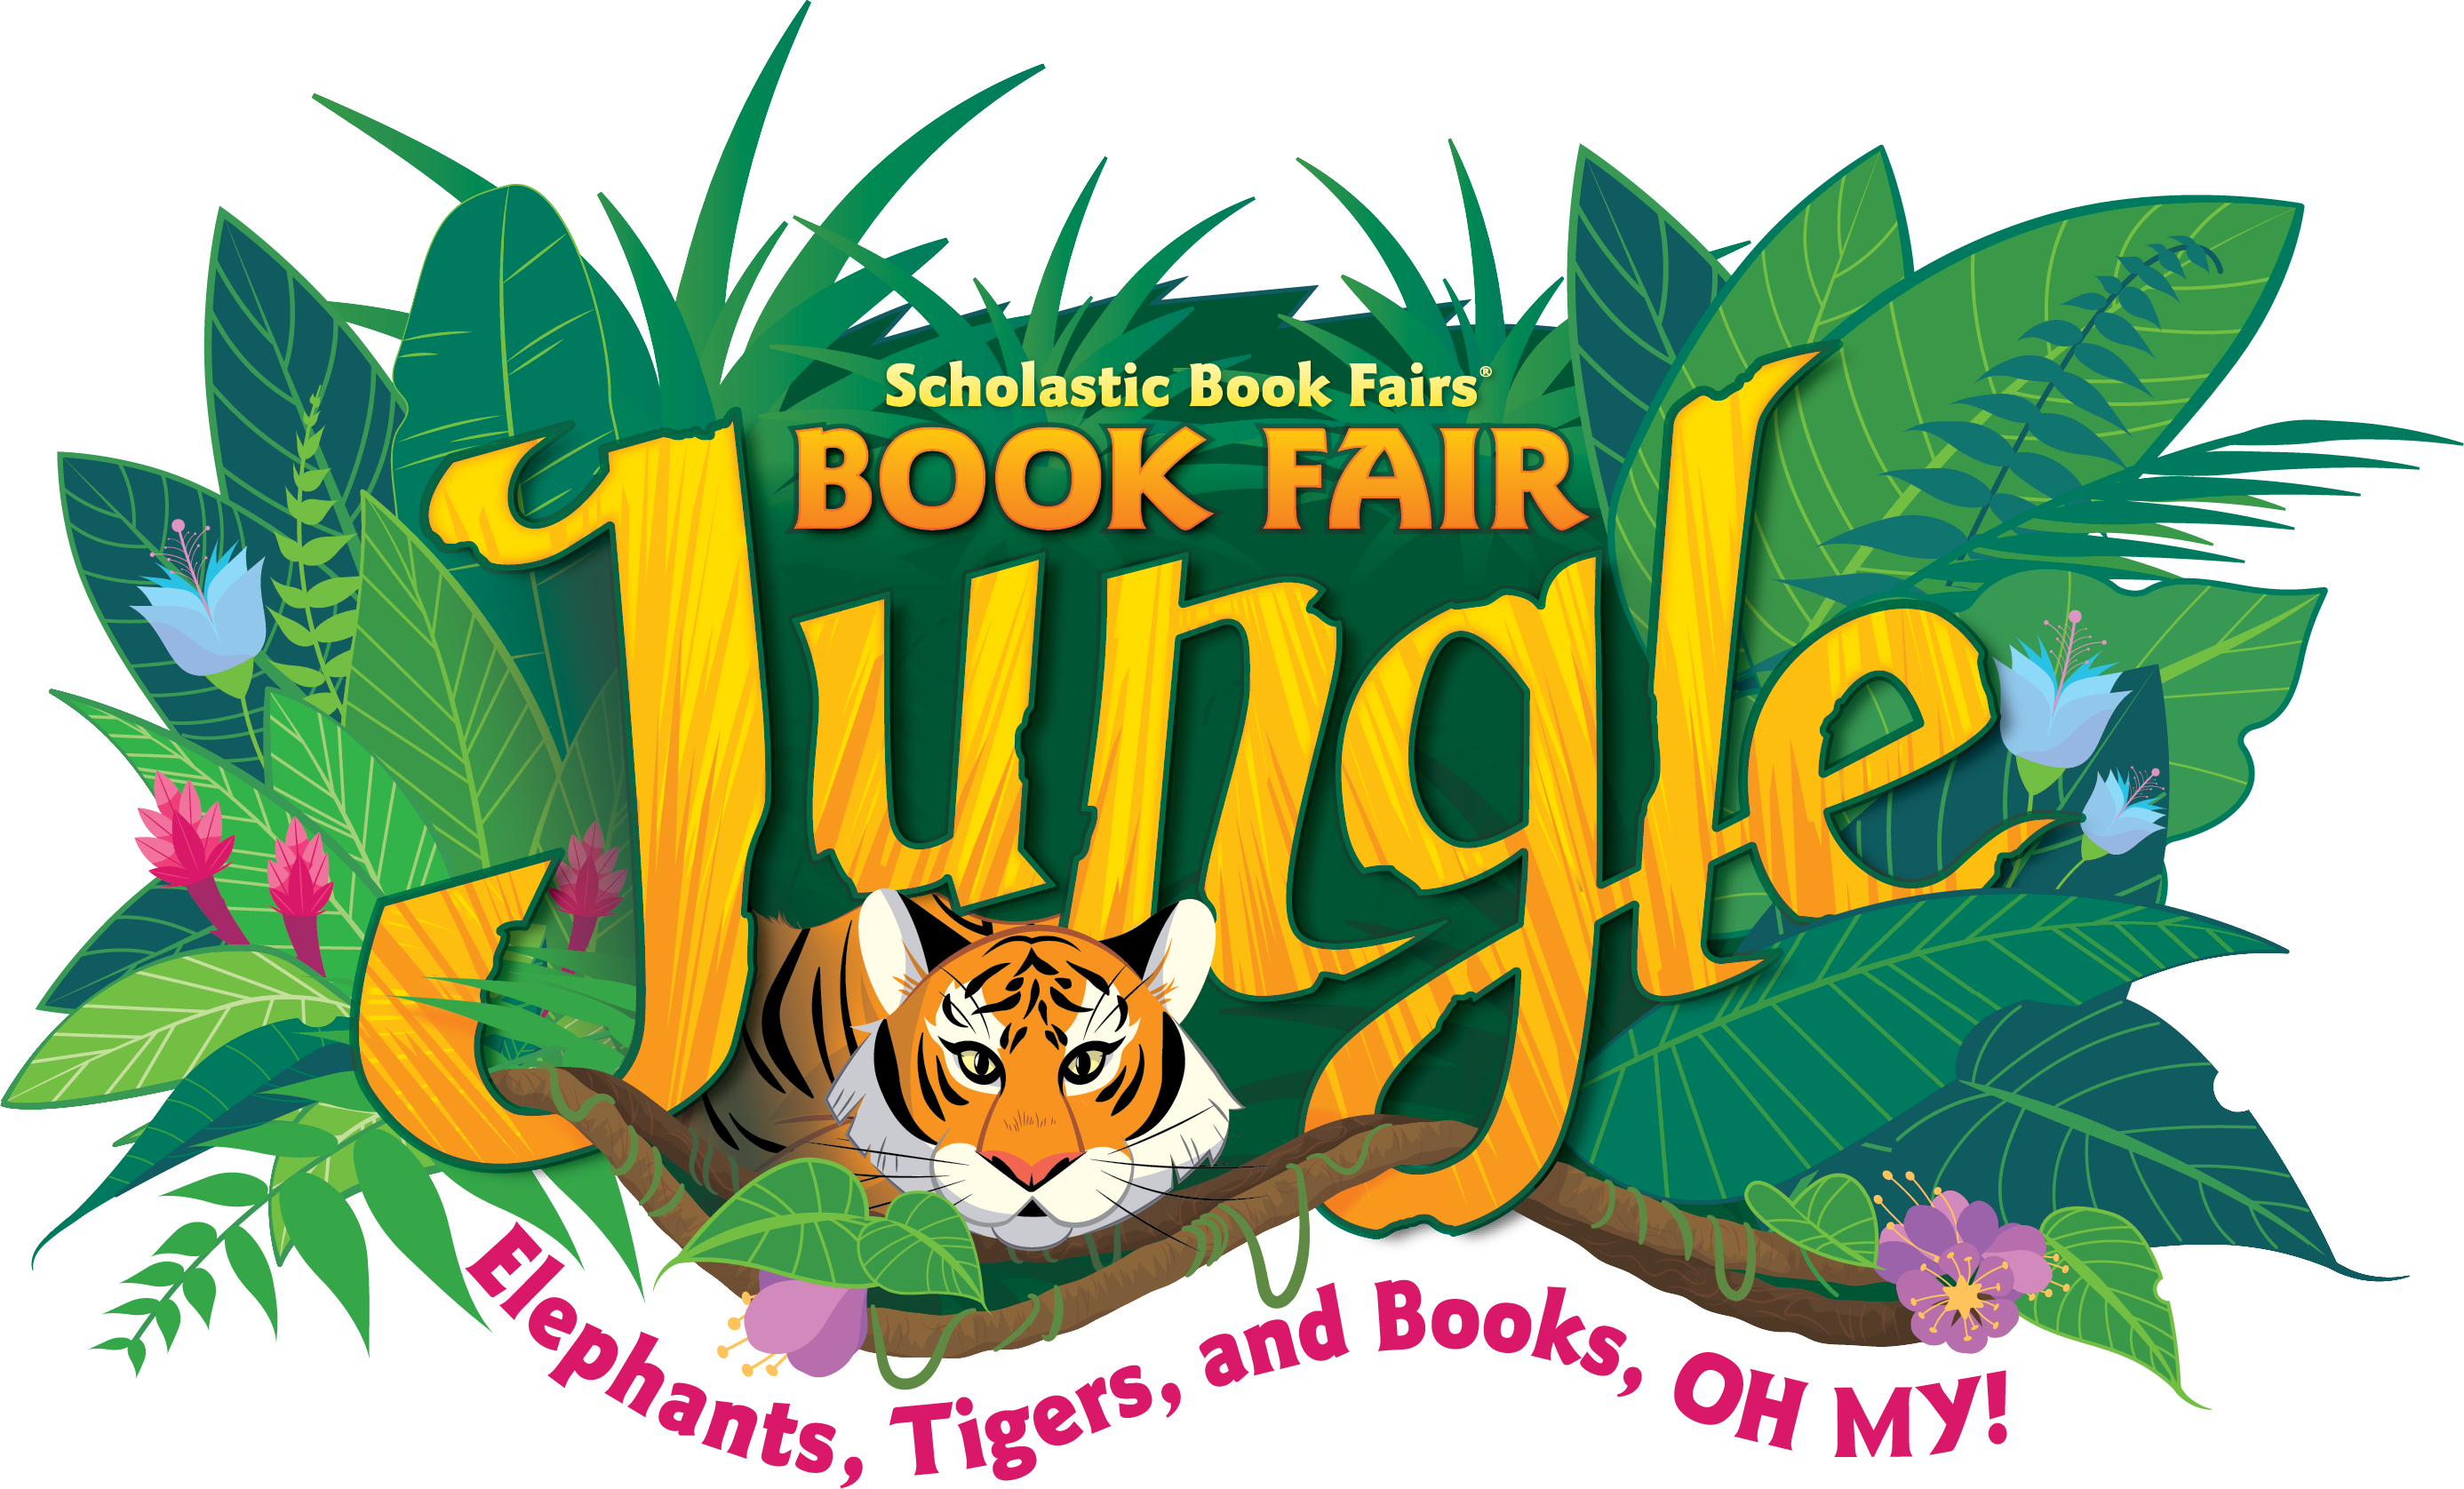 Jungle scene with tigers advertising Scholastic Book Fair